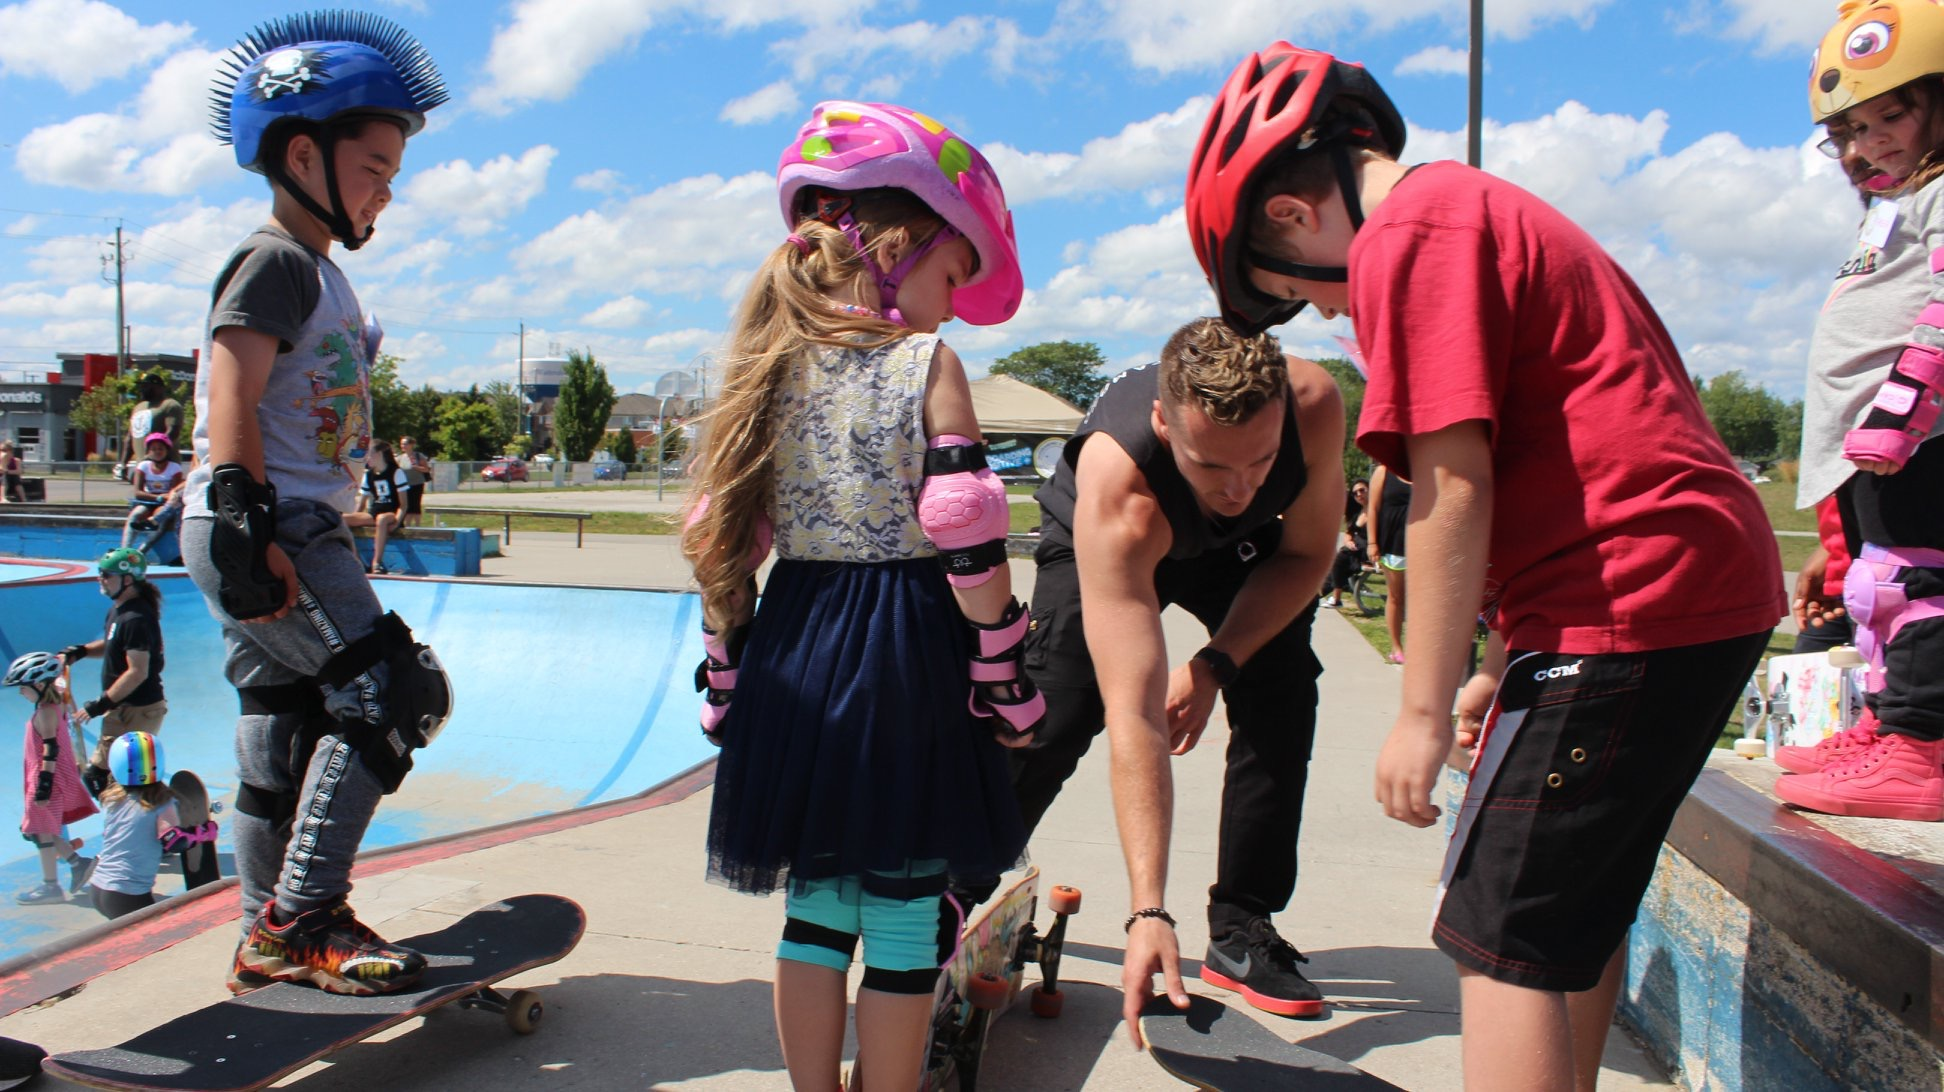 Pictured: Nathan teaching his skateboarding students new skills that can apply to skateboarding but also to life.